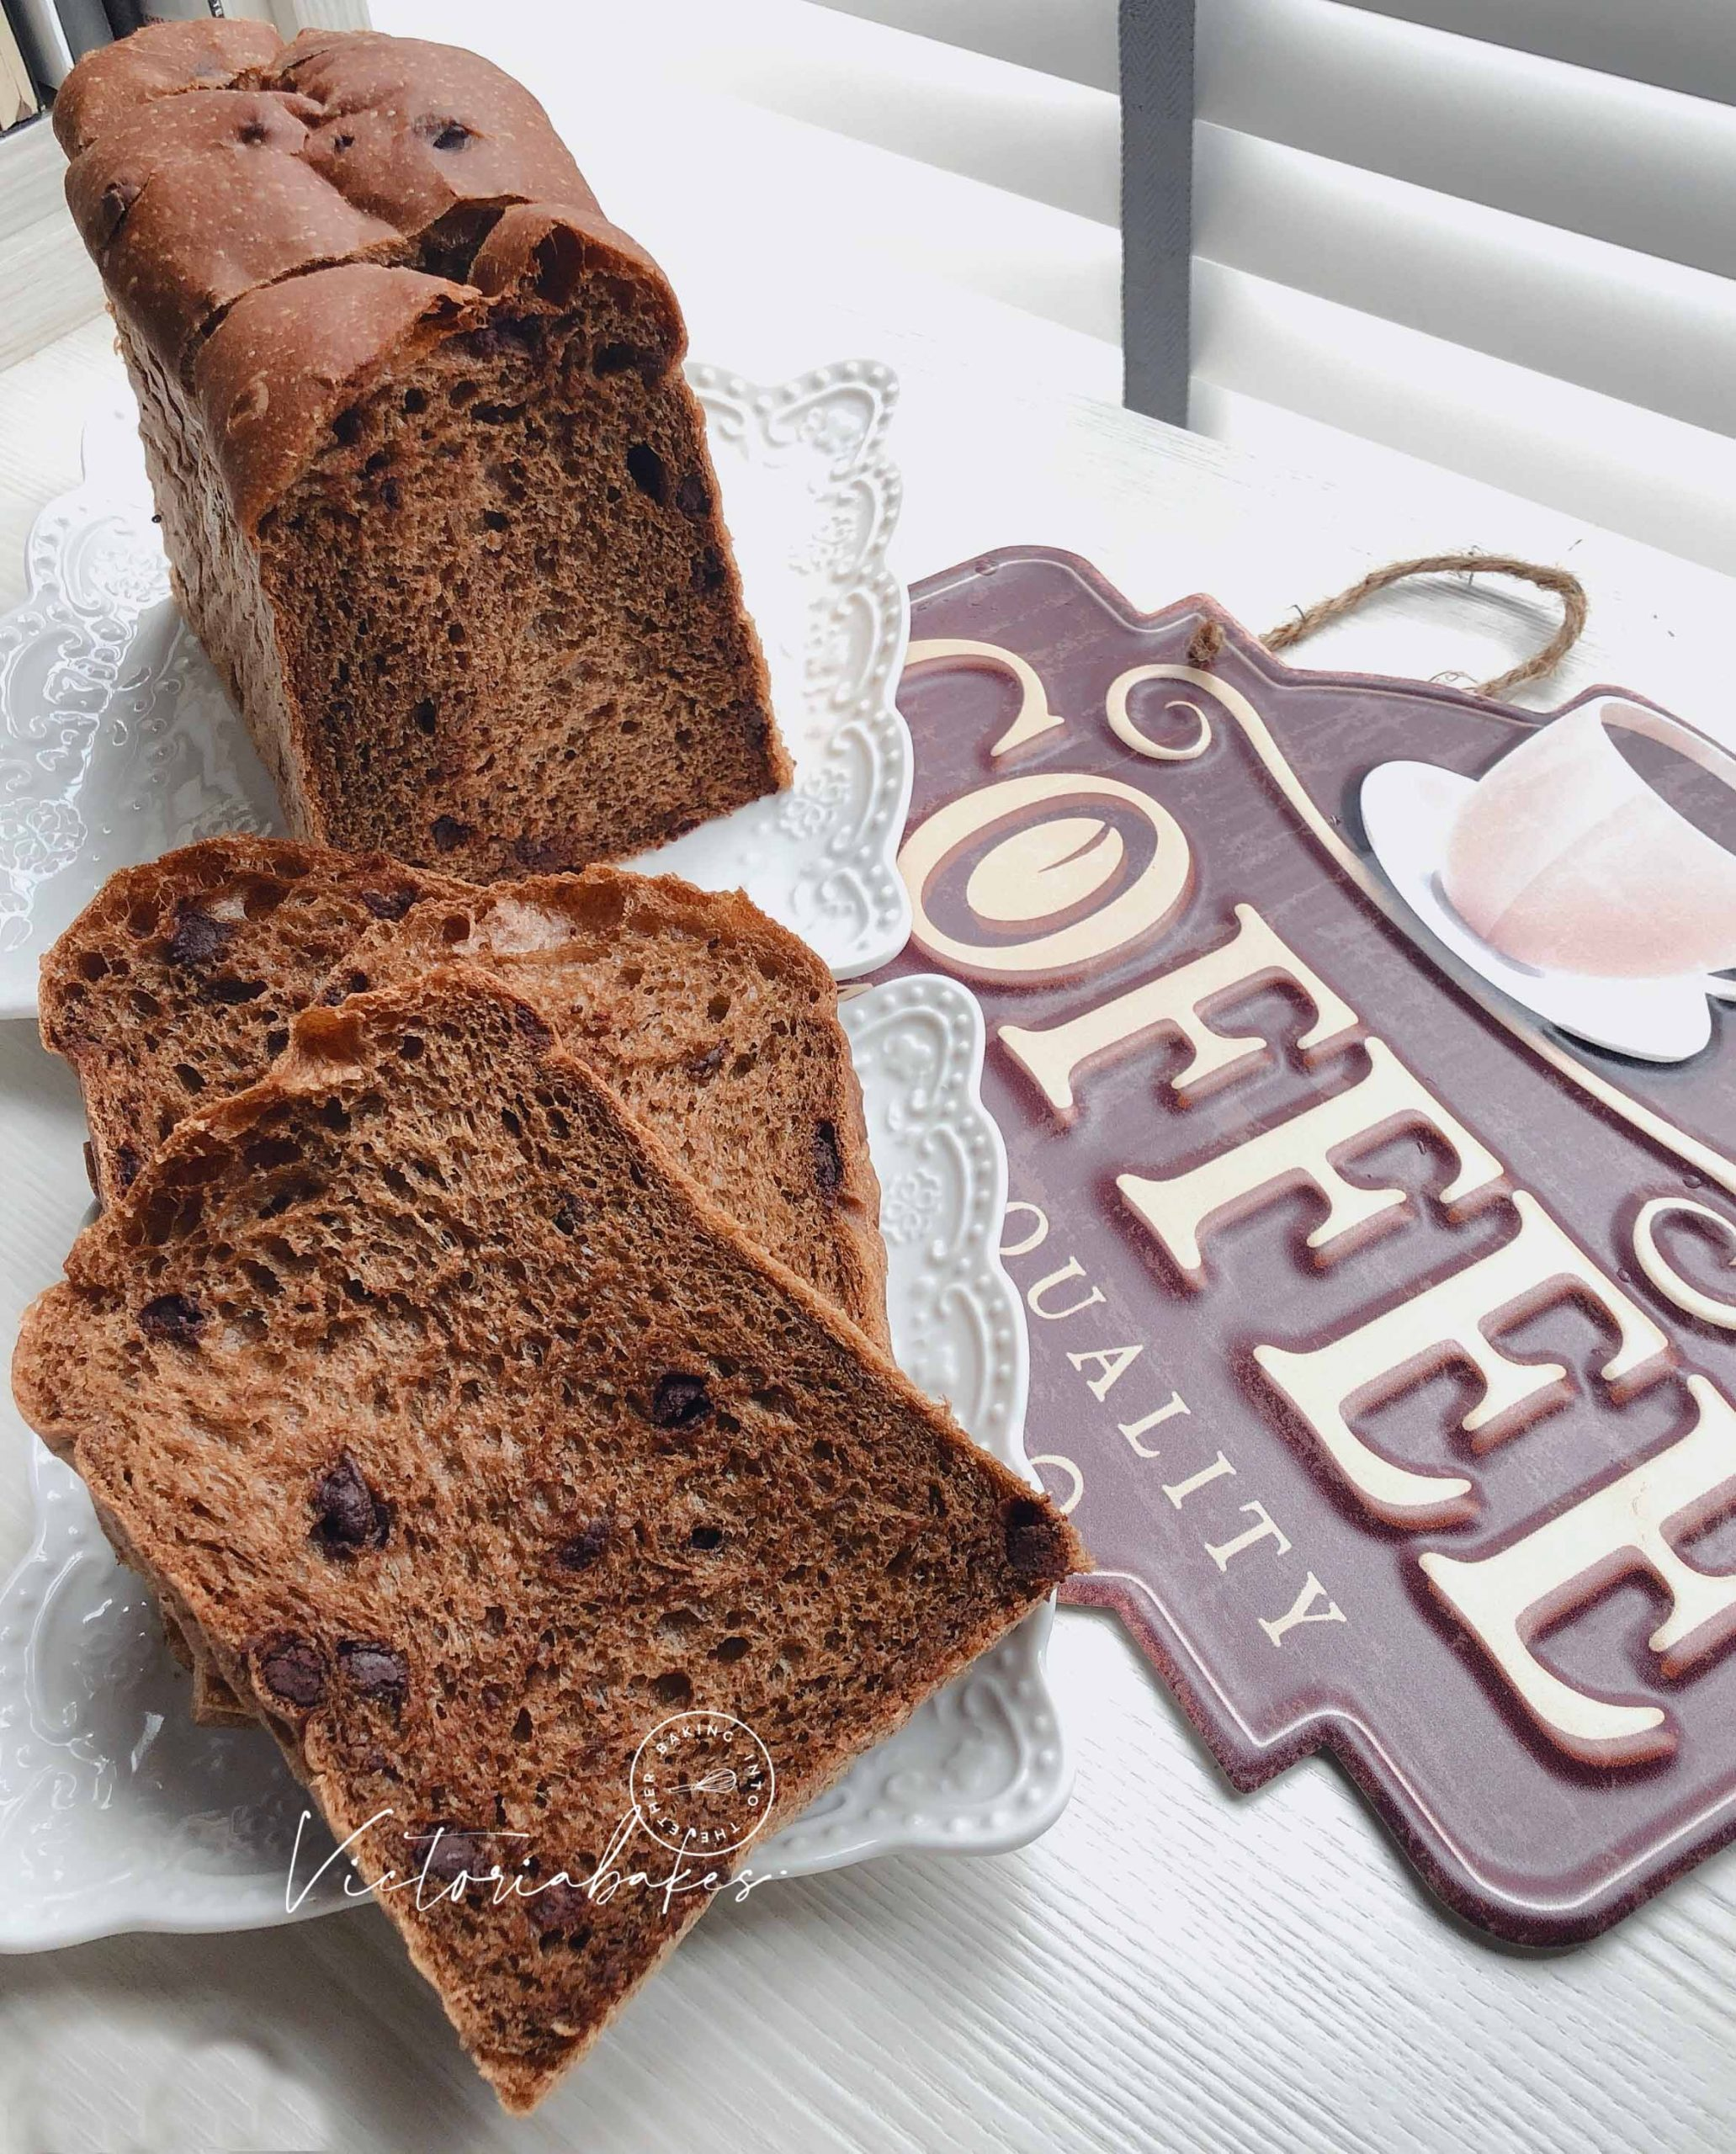 super soft mocha chocolate chip toast (premixing dough method) ~ highly recommended 软趴趴摩卡巧克力吐司(泡面法) ~ 强推